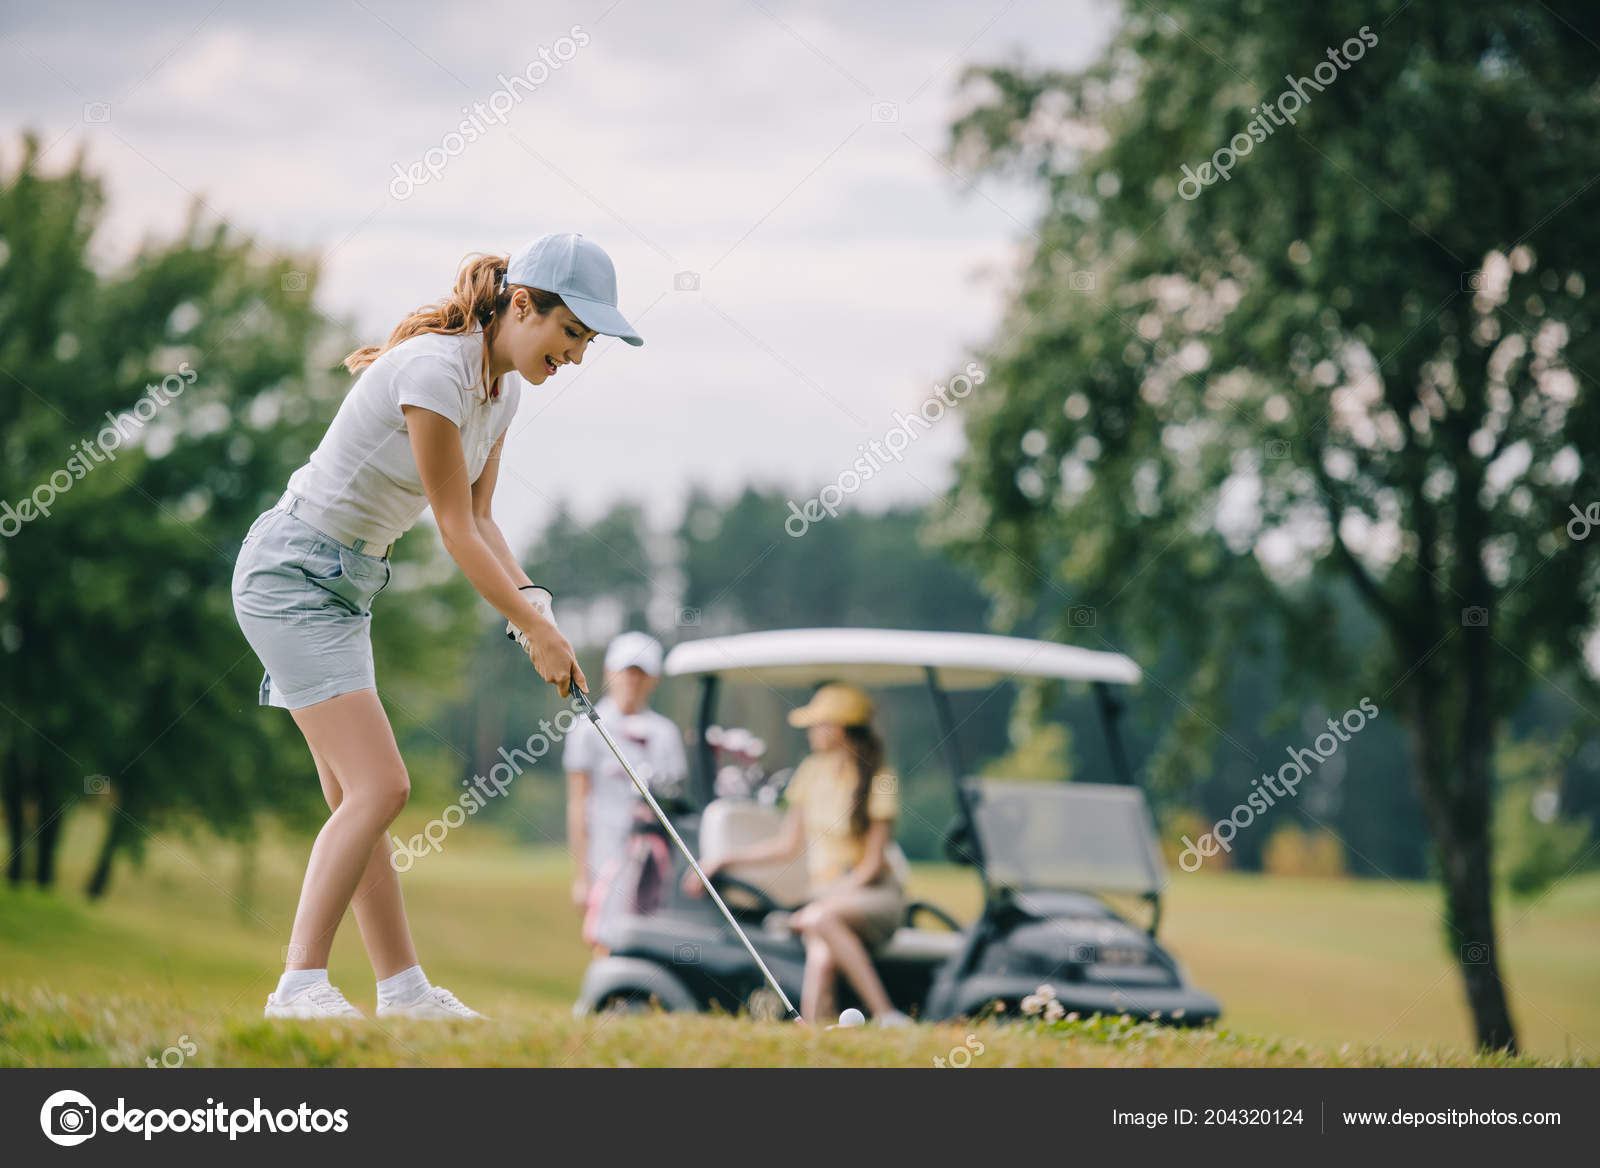 golf with friends download